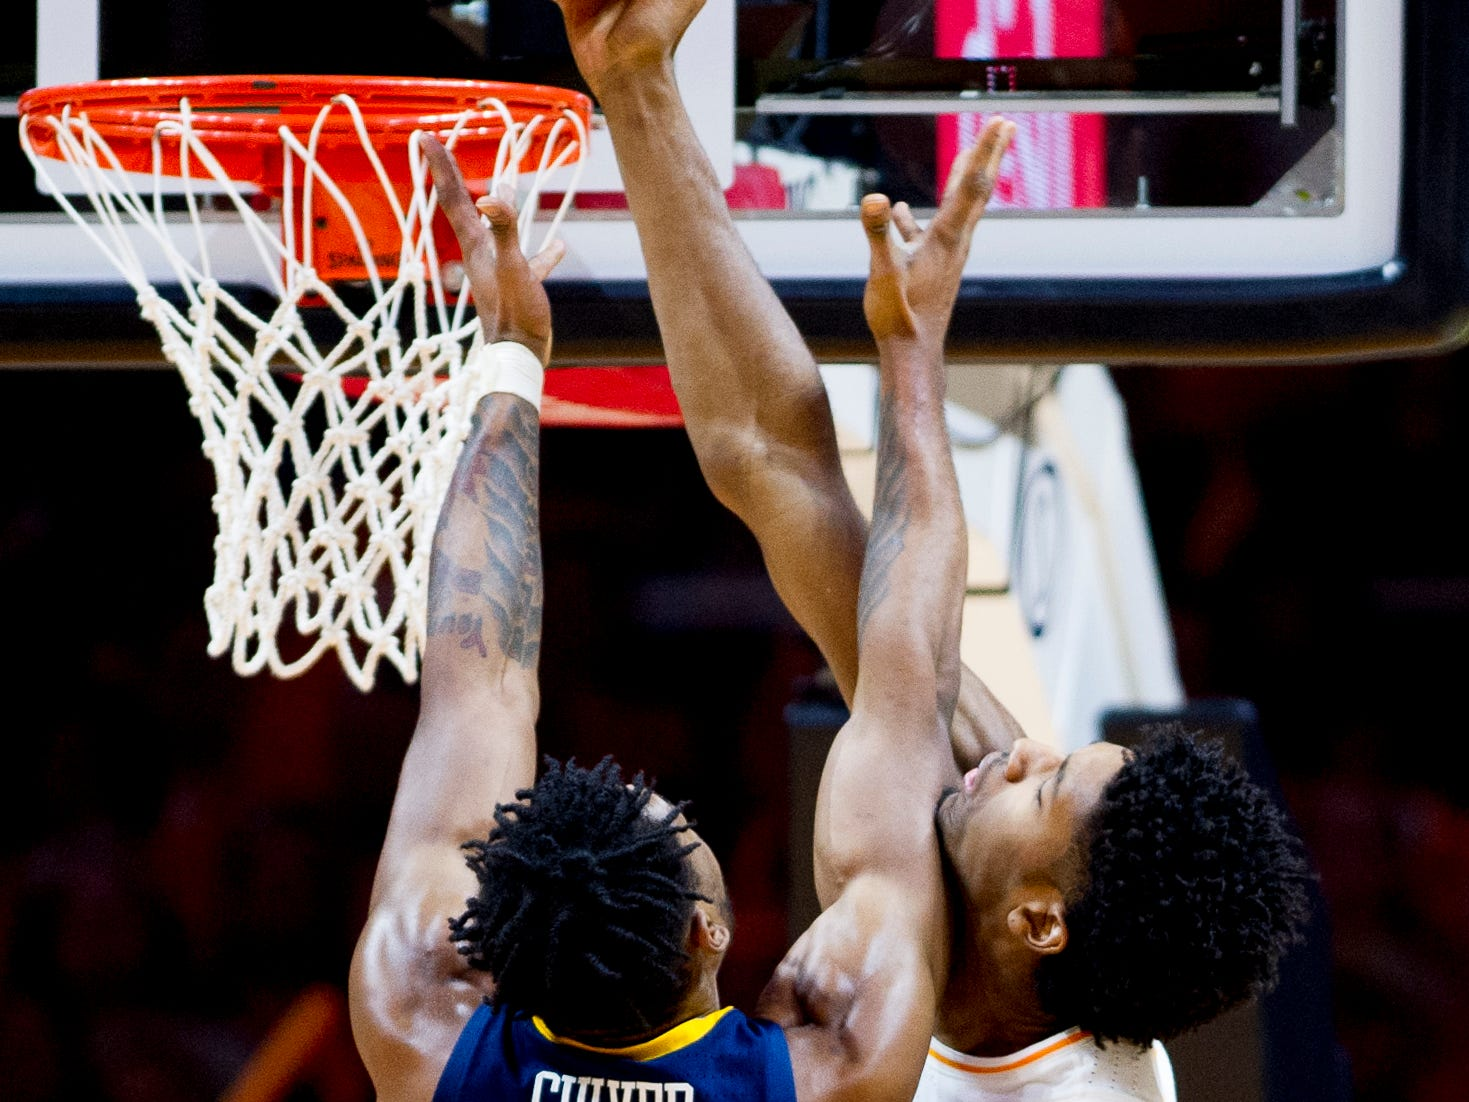 West Virginia forward Derek Culver (1) goes for a point as Tennessee forward Kyle Alexander (11) defends during a SEC/Big 12 Challenge game between Tennessee and West Virginia at Thompson-Boling Arena in Knoxville, Tennessee on Saturday, January 26, 2019.